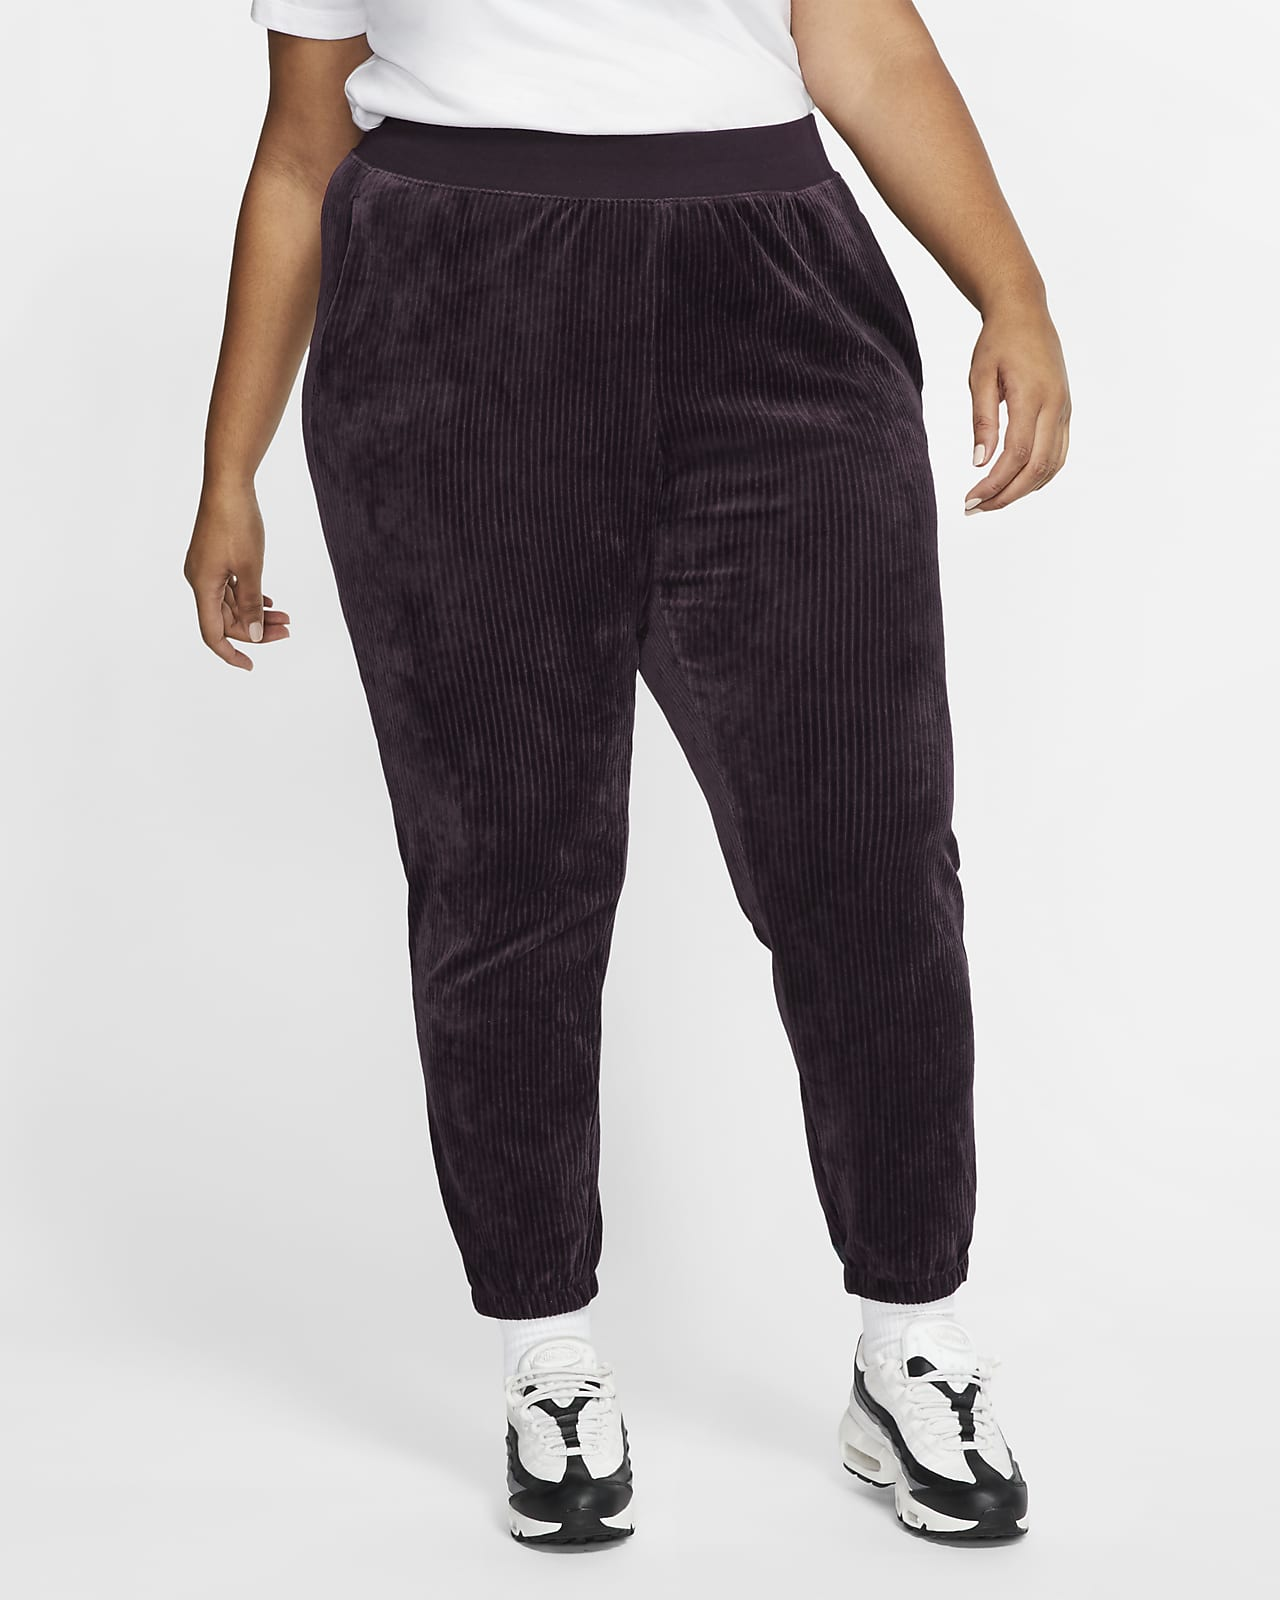 Nike Sportswear Women's Velour Trousers (Plus Size)